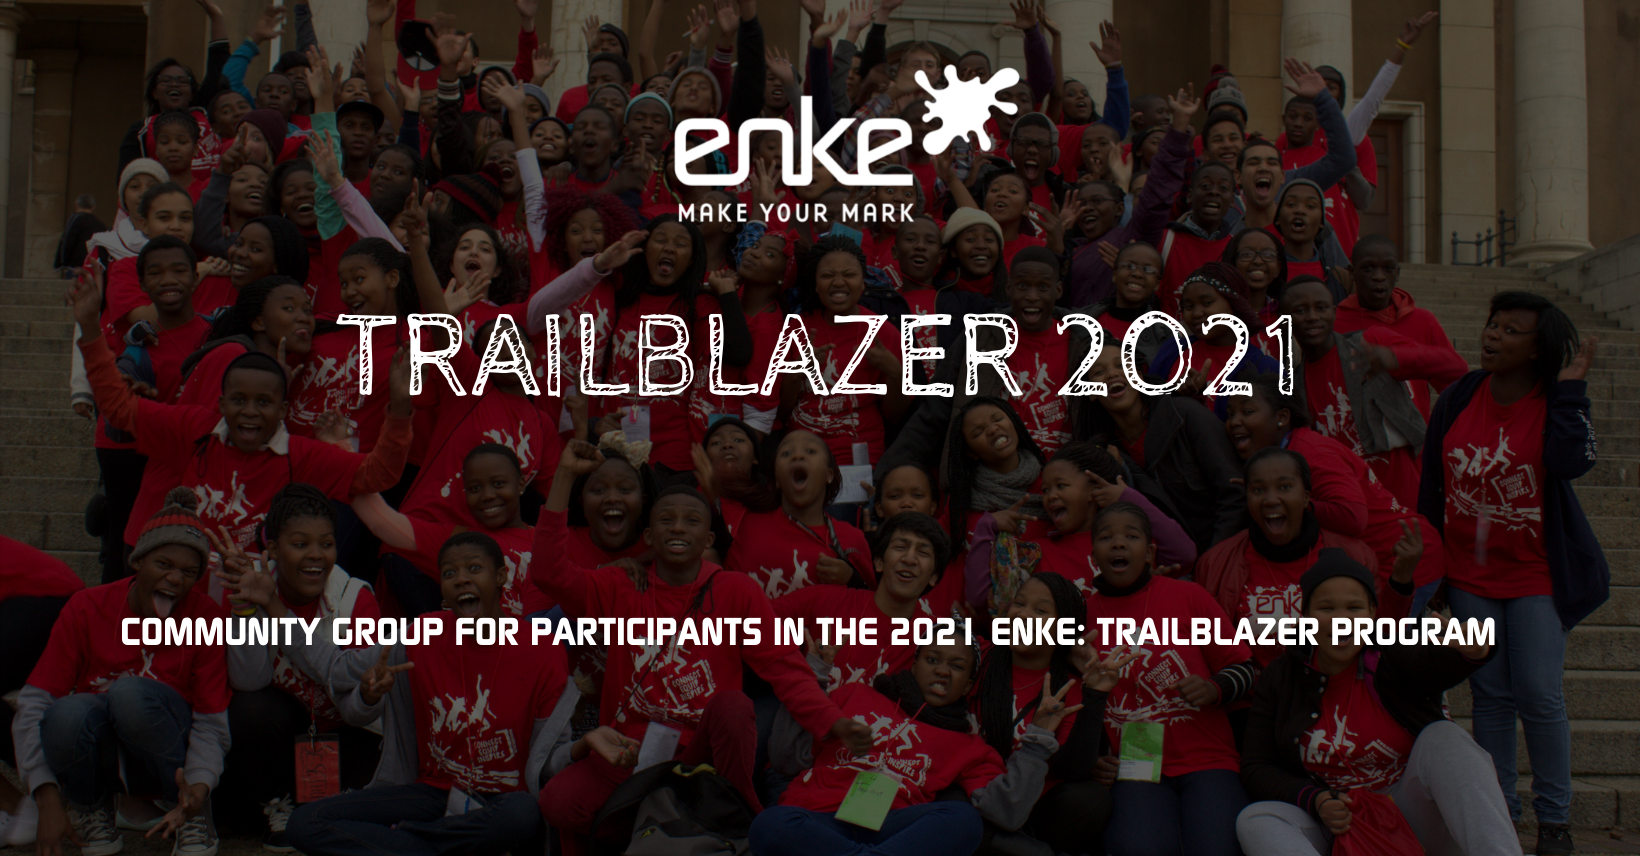 Trailblazer Class of 2021 Launches and highlights